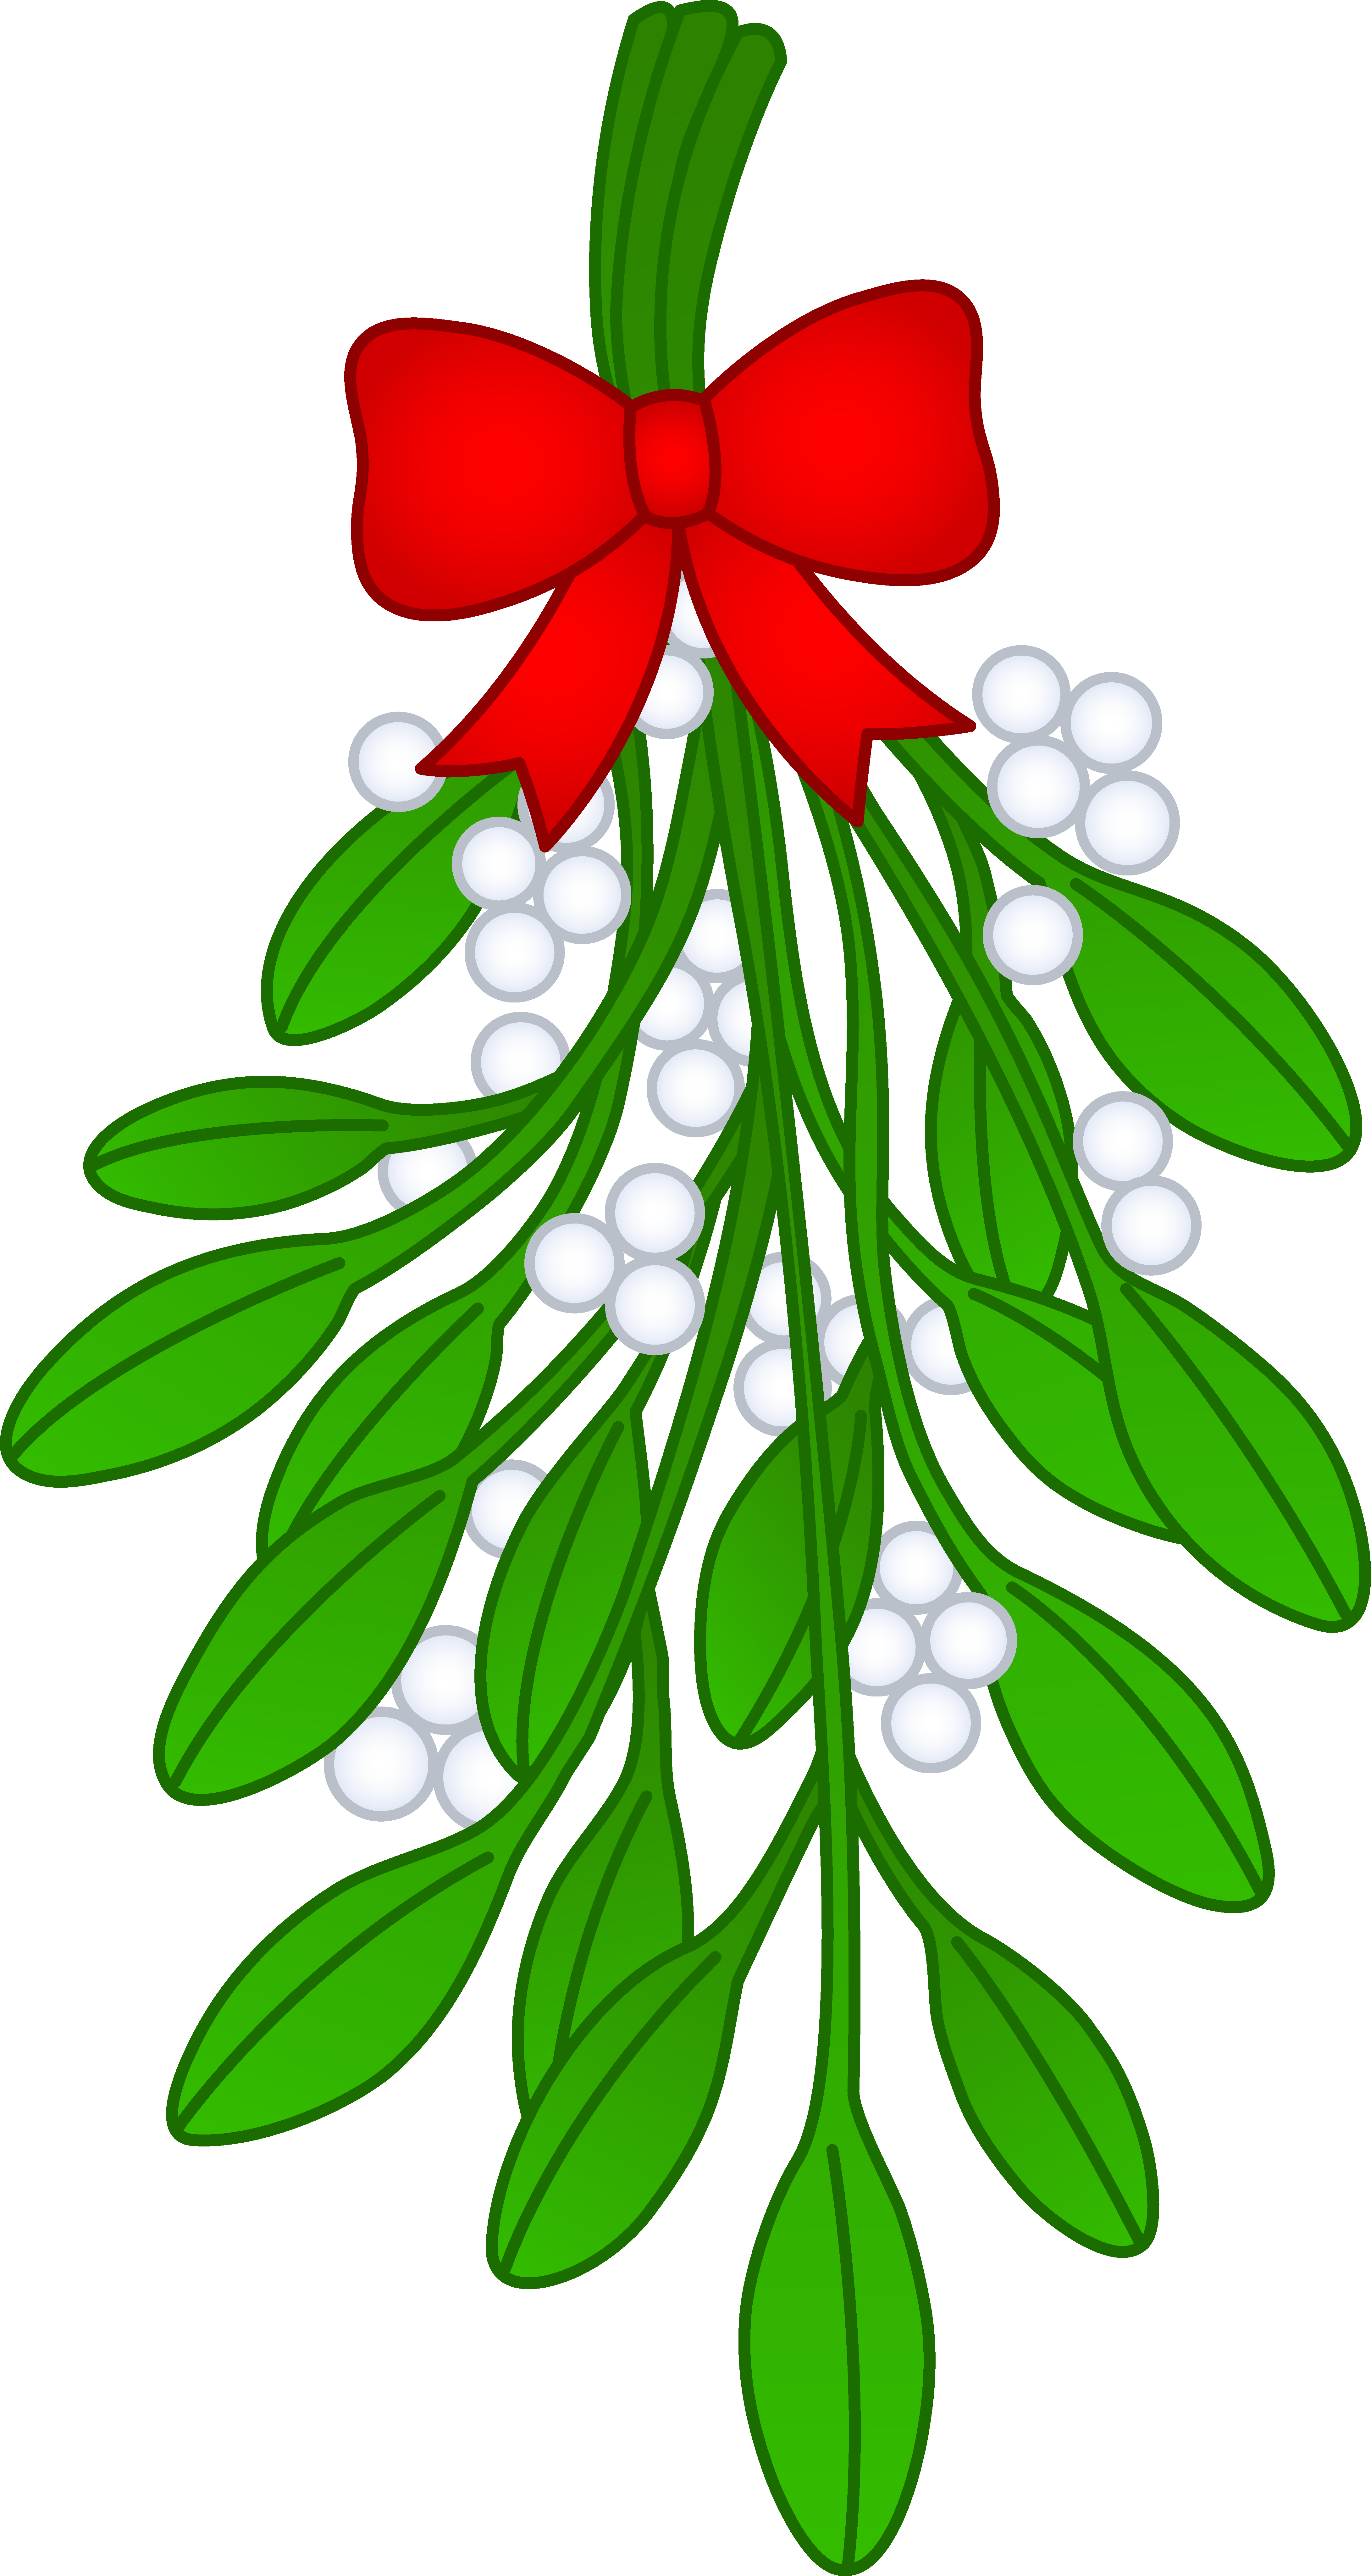 4361x8192 Christmas Mistletoe With Red Bow